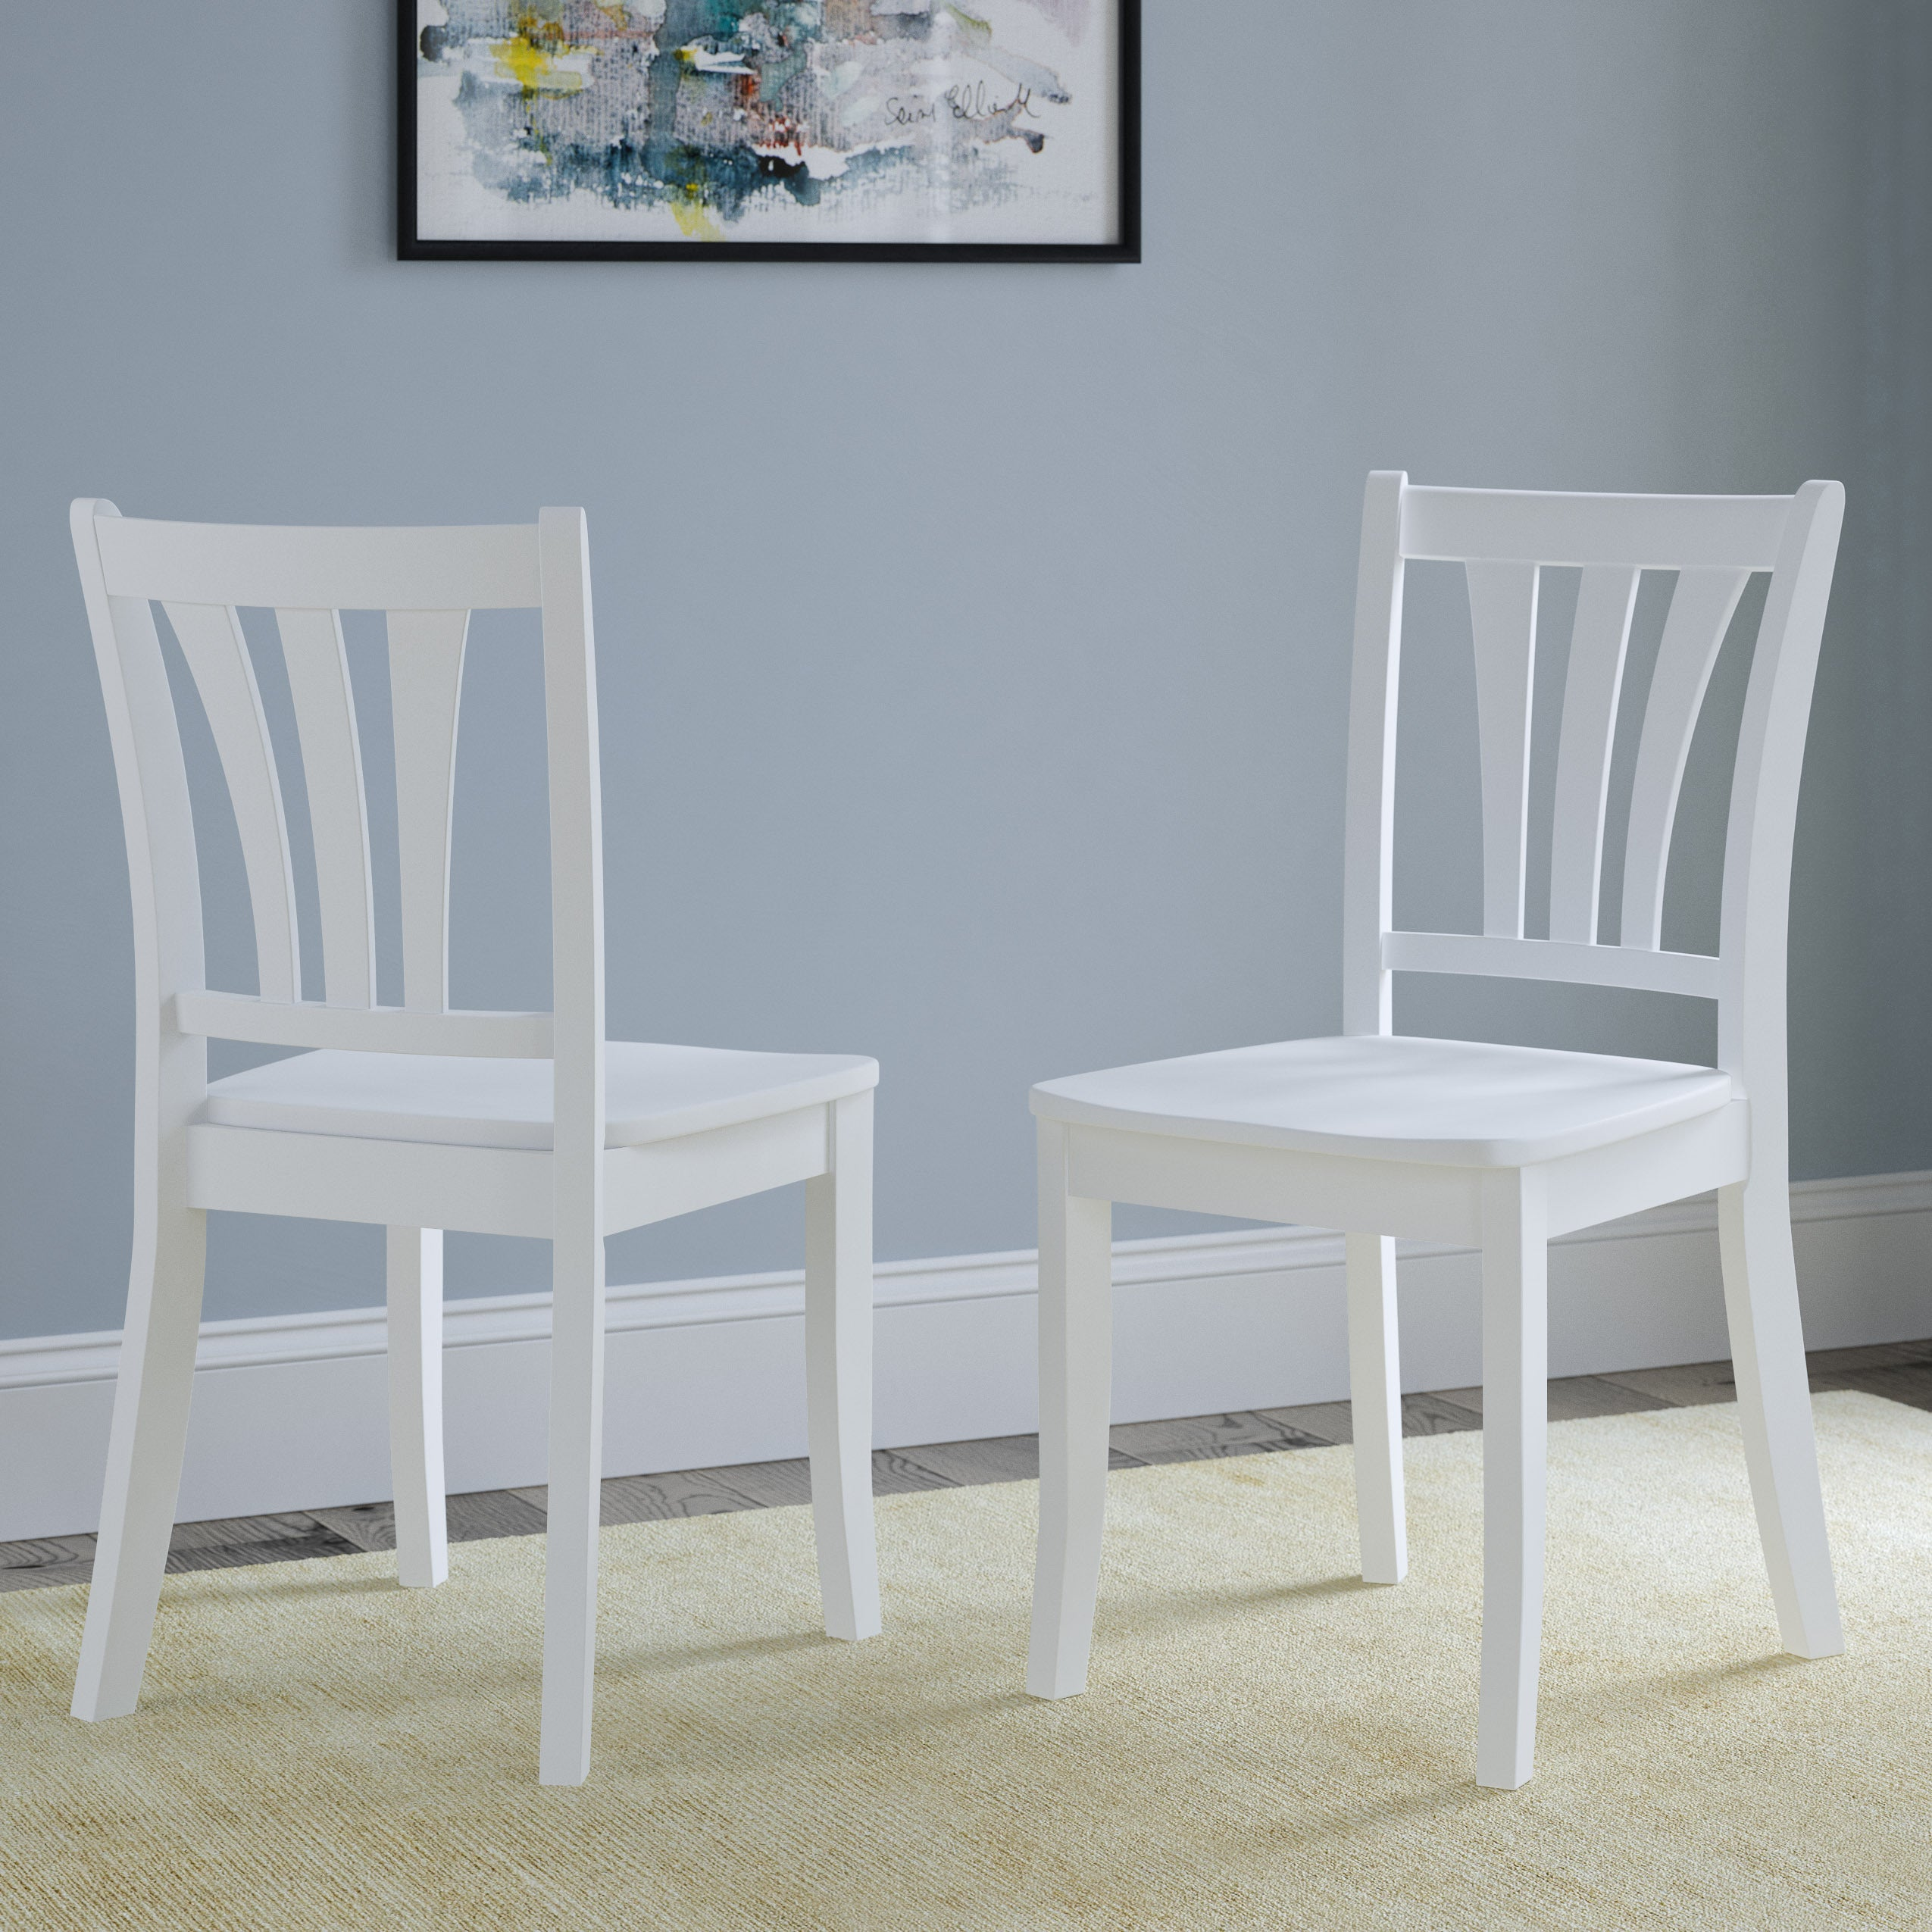 Corliving Dillon White Solid Wood Curved Vertical Slat Design Dining Chairs Set Of 2